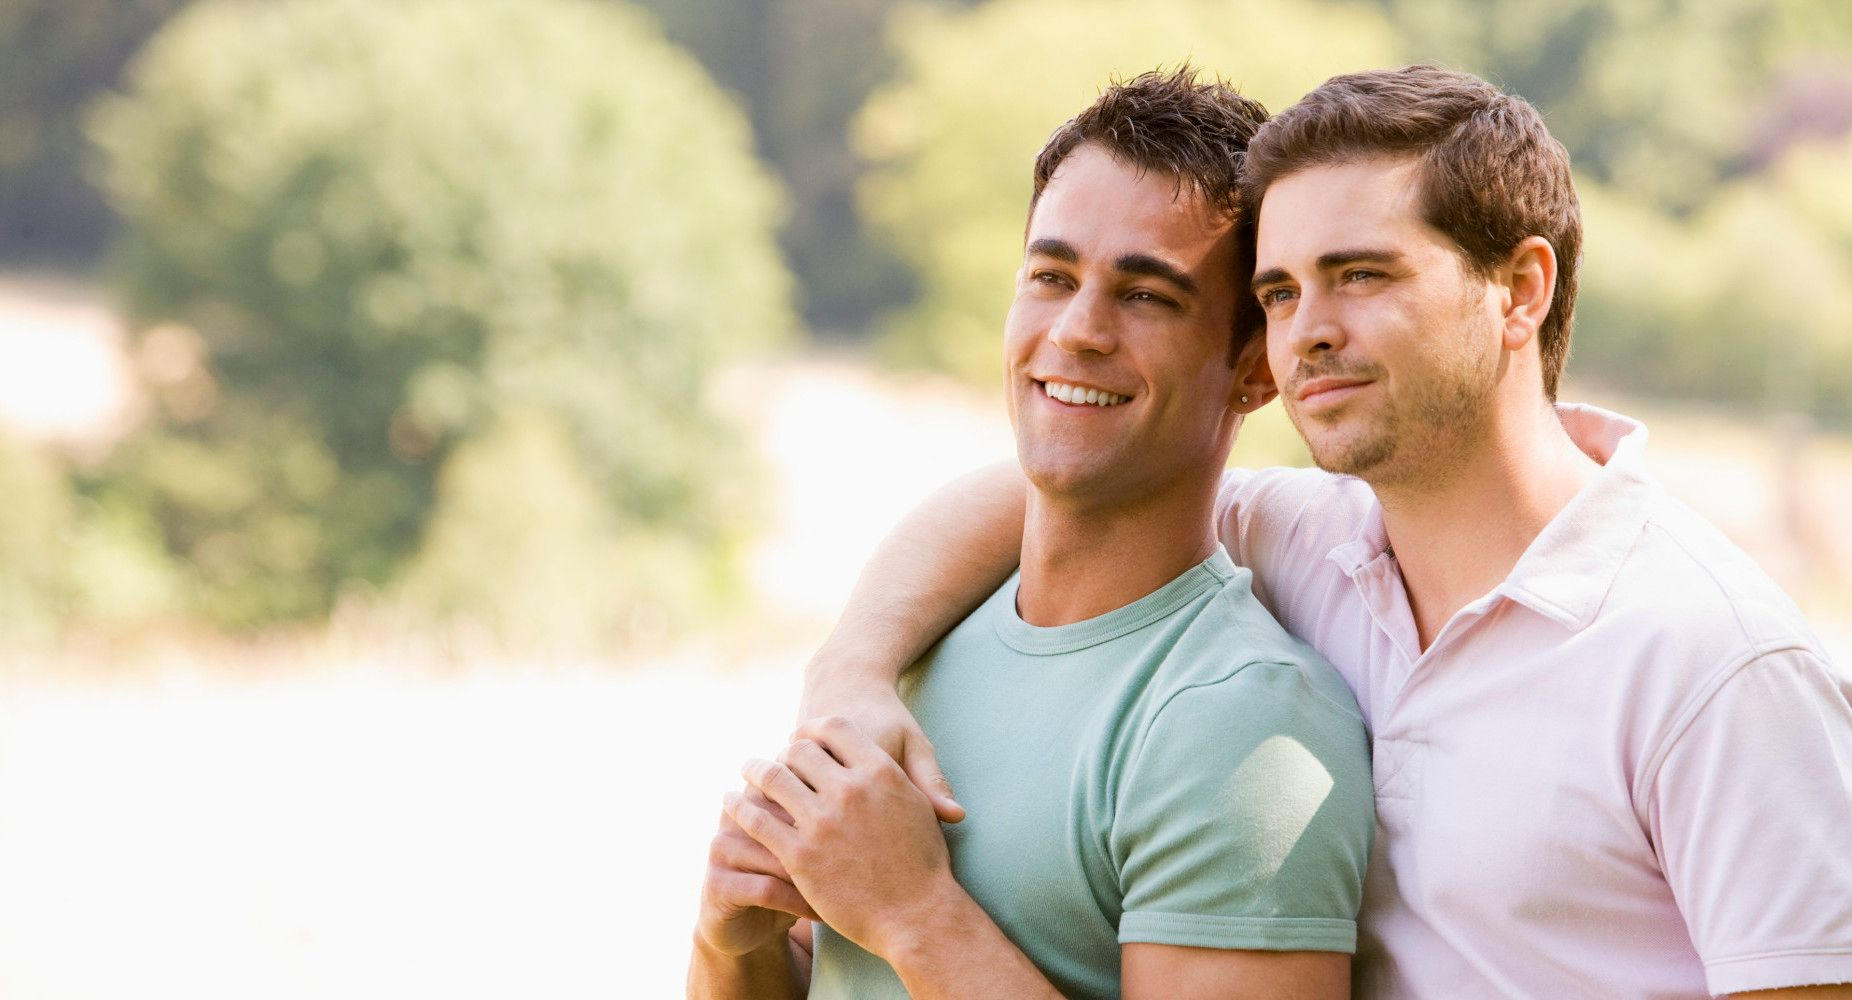 Gay male hookup advice